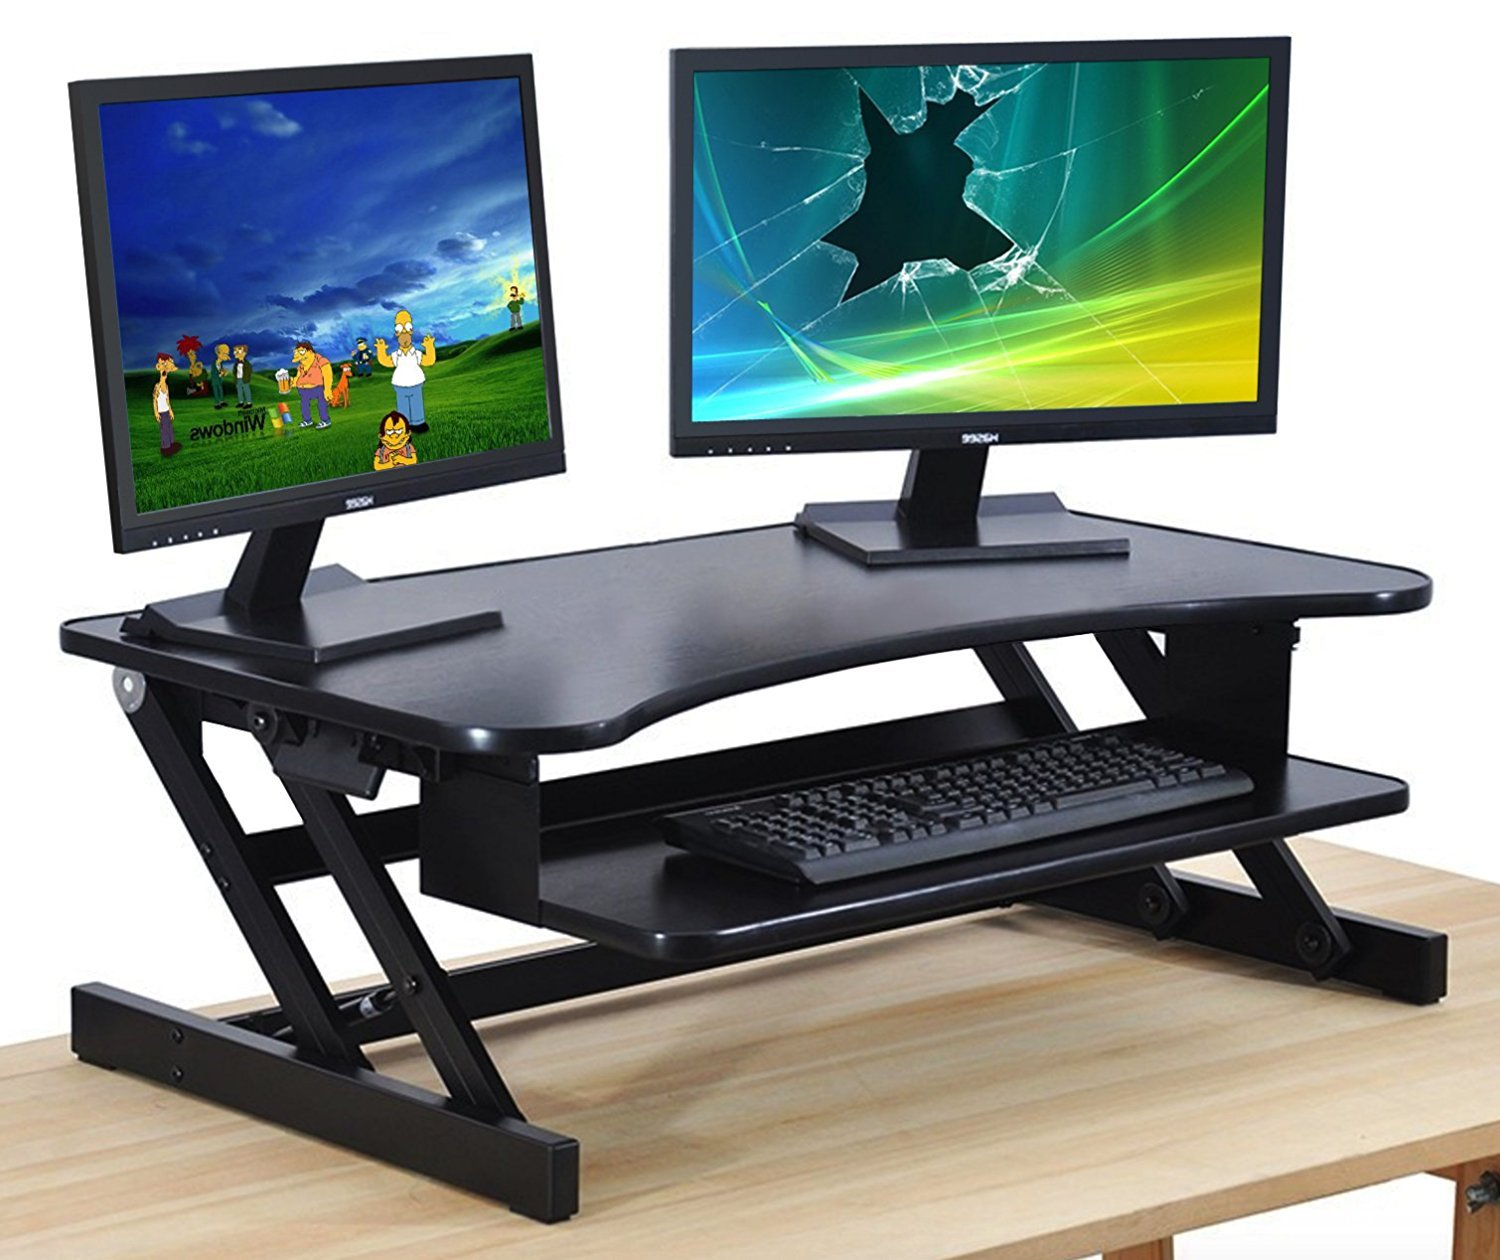 The House of Trade Standing Desk Height Adjustable Sit to Stand Up Desk Riser   32in. Wide Fits Dual Monitors